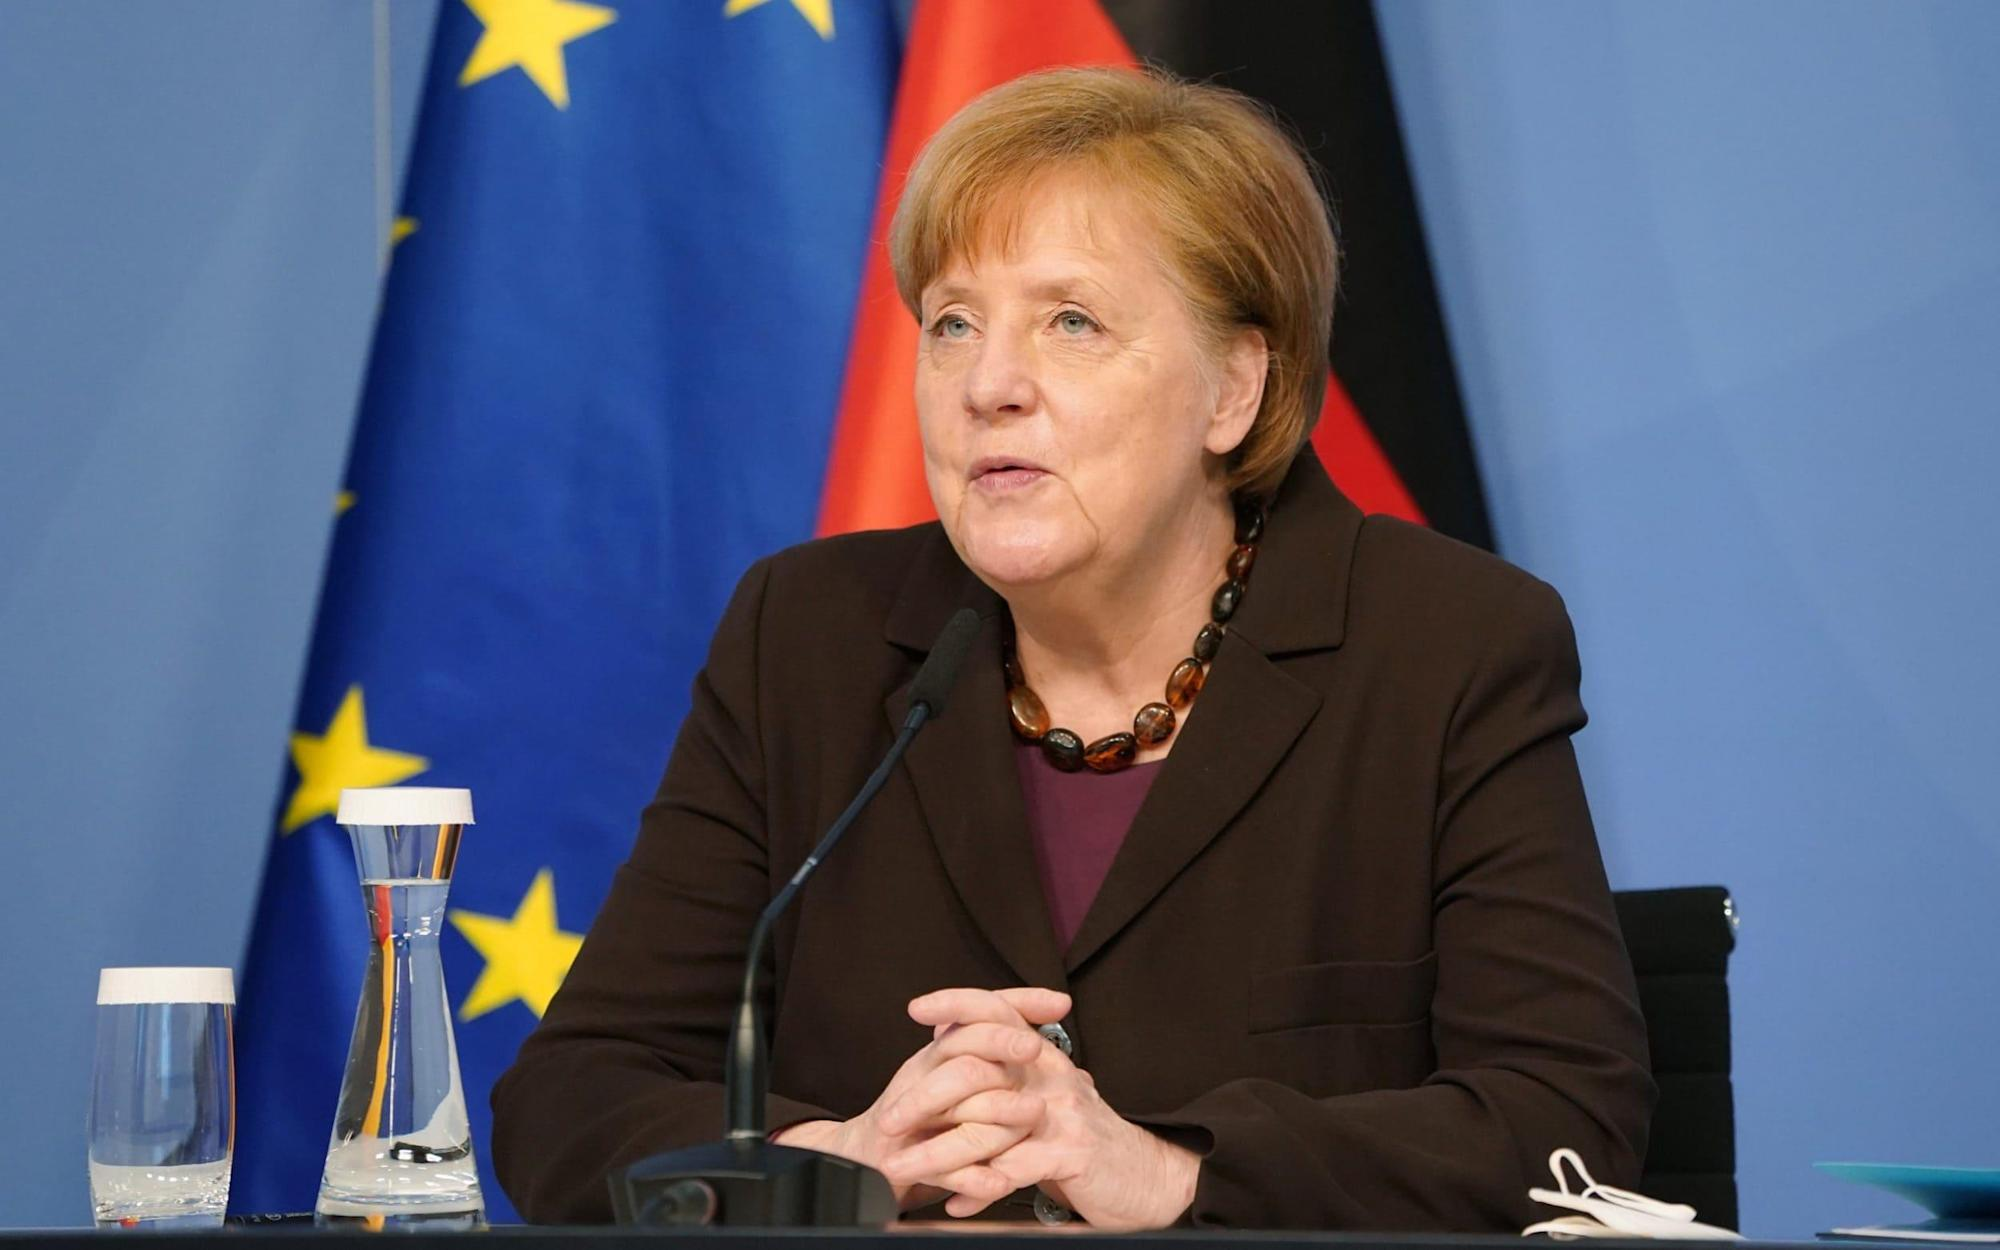 Angela Merkel says she will not take AstraZeneca vaccine and 'lead by example'